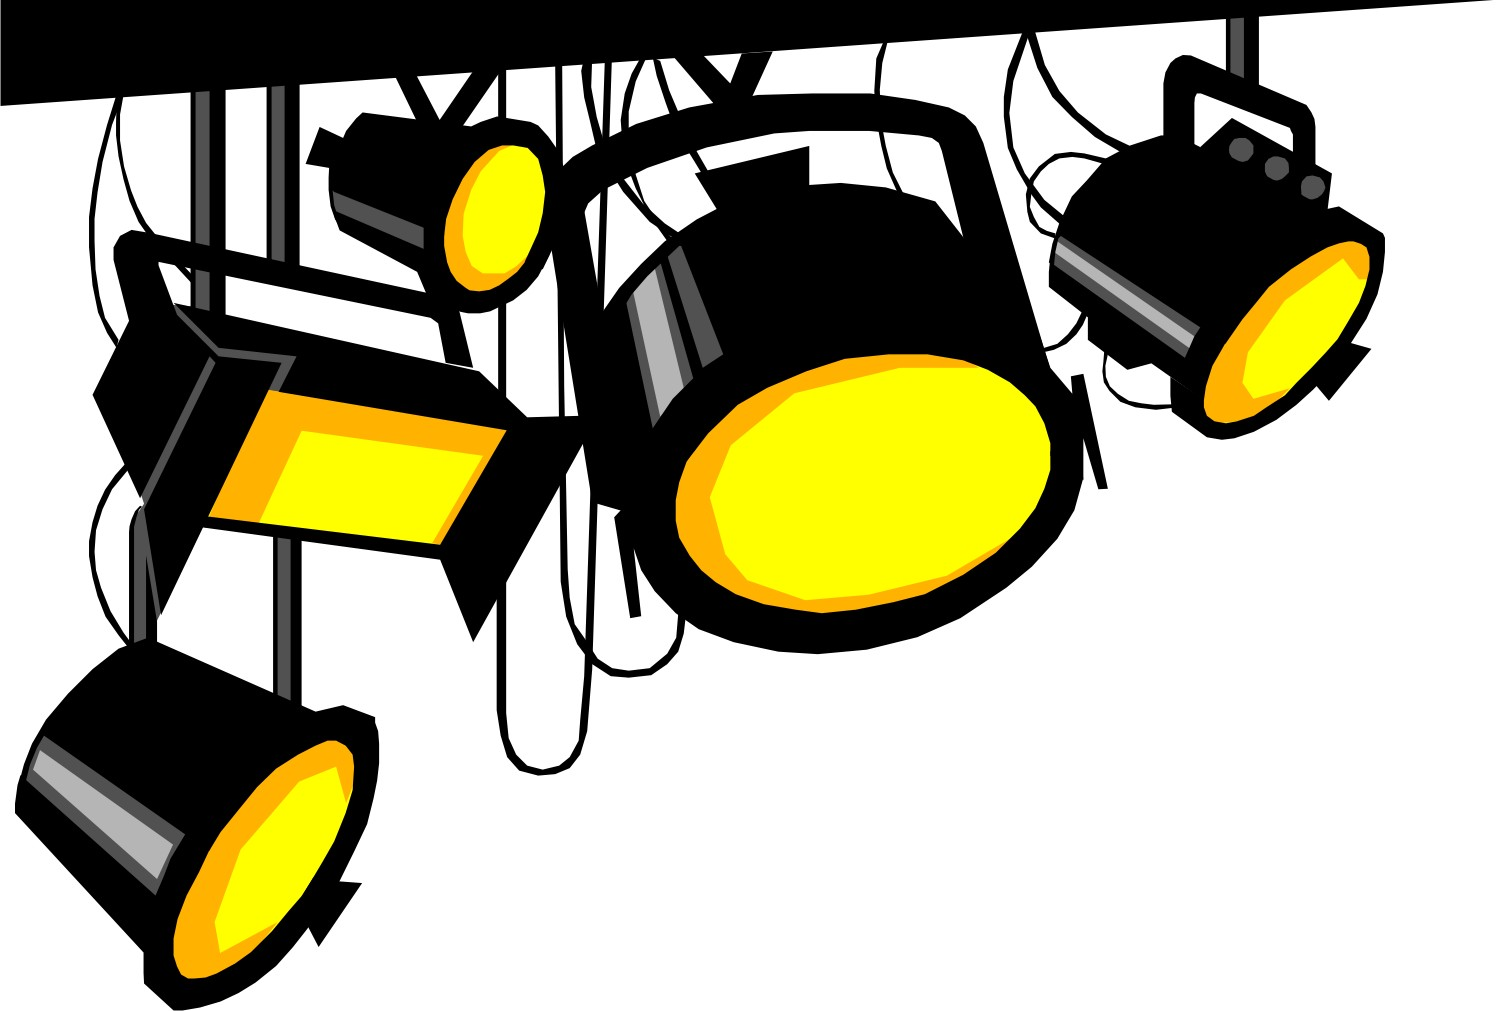 Lights clipart #14